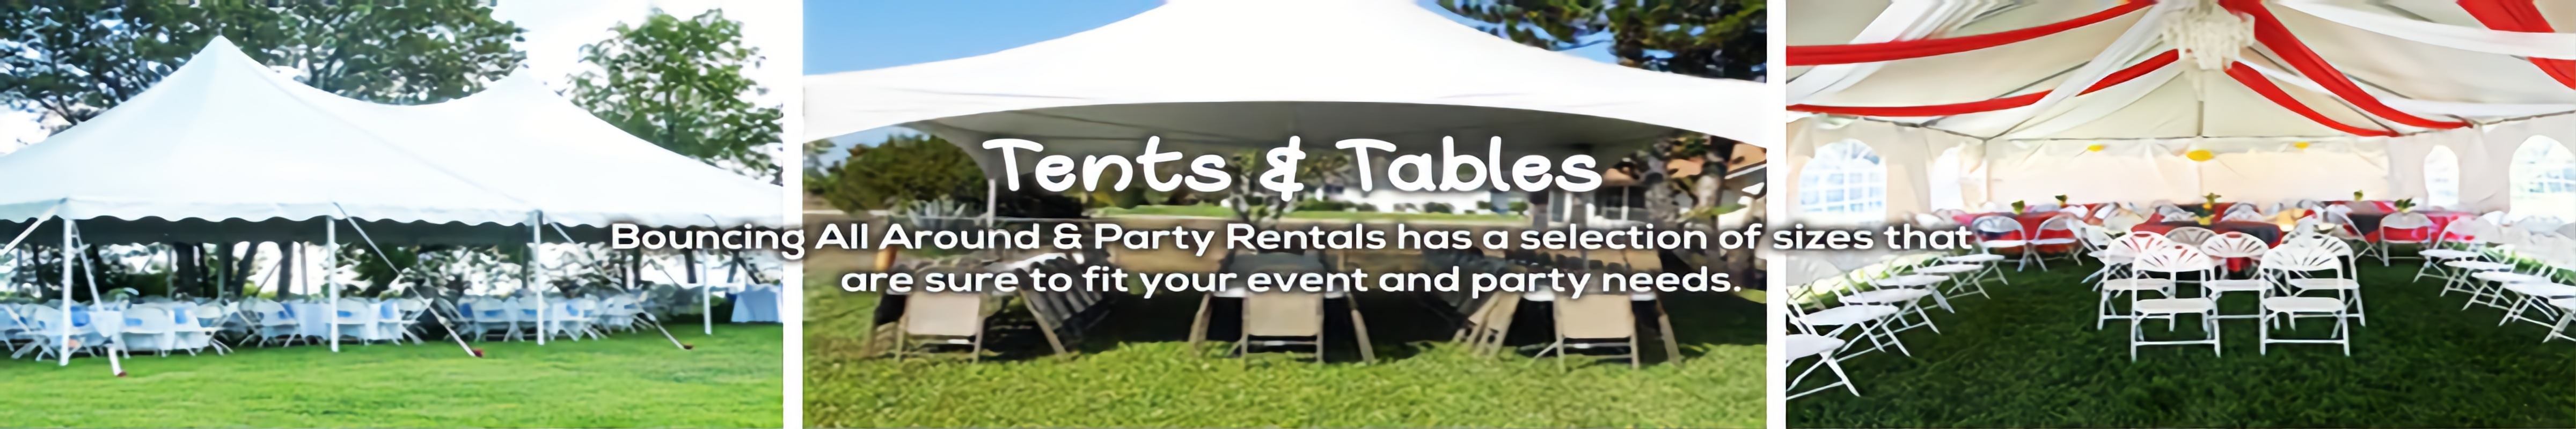 Tents, Table & Chairs Rentals | Bouncing All Around & Party Rentals